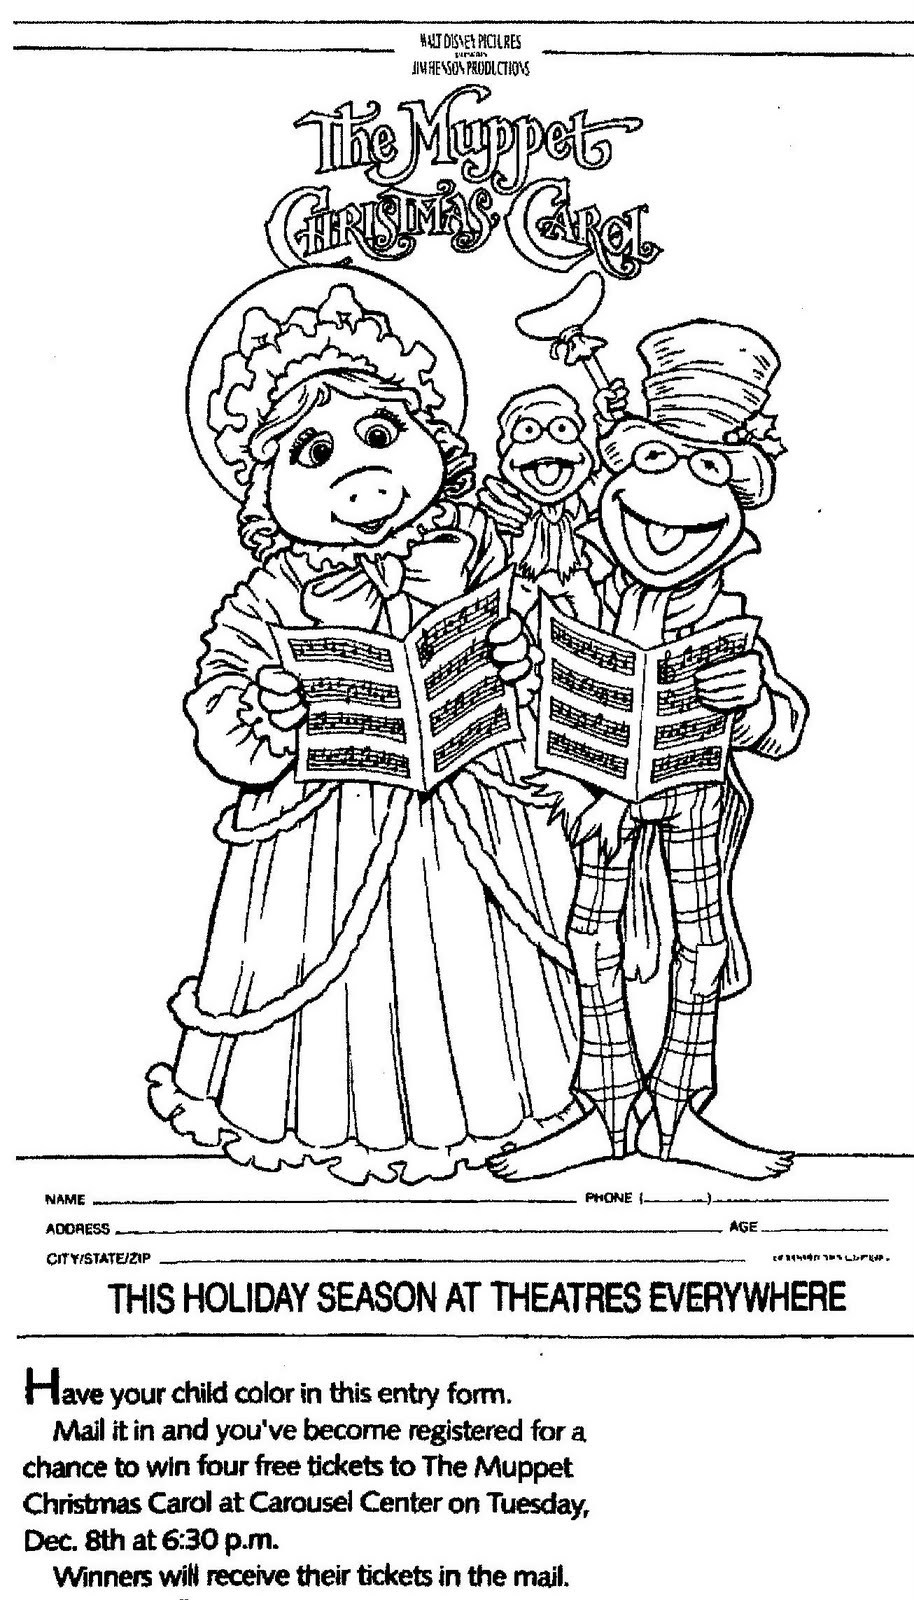 THE MUPPET CHRISTMAS CAROL Movie Coloring Contest